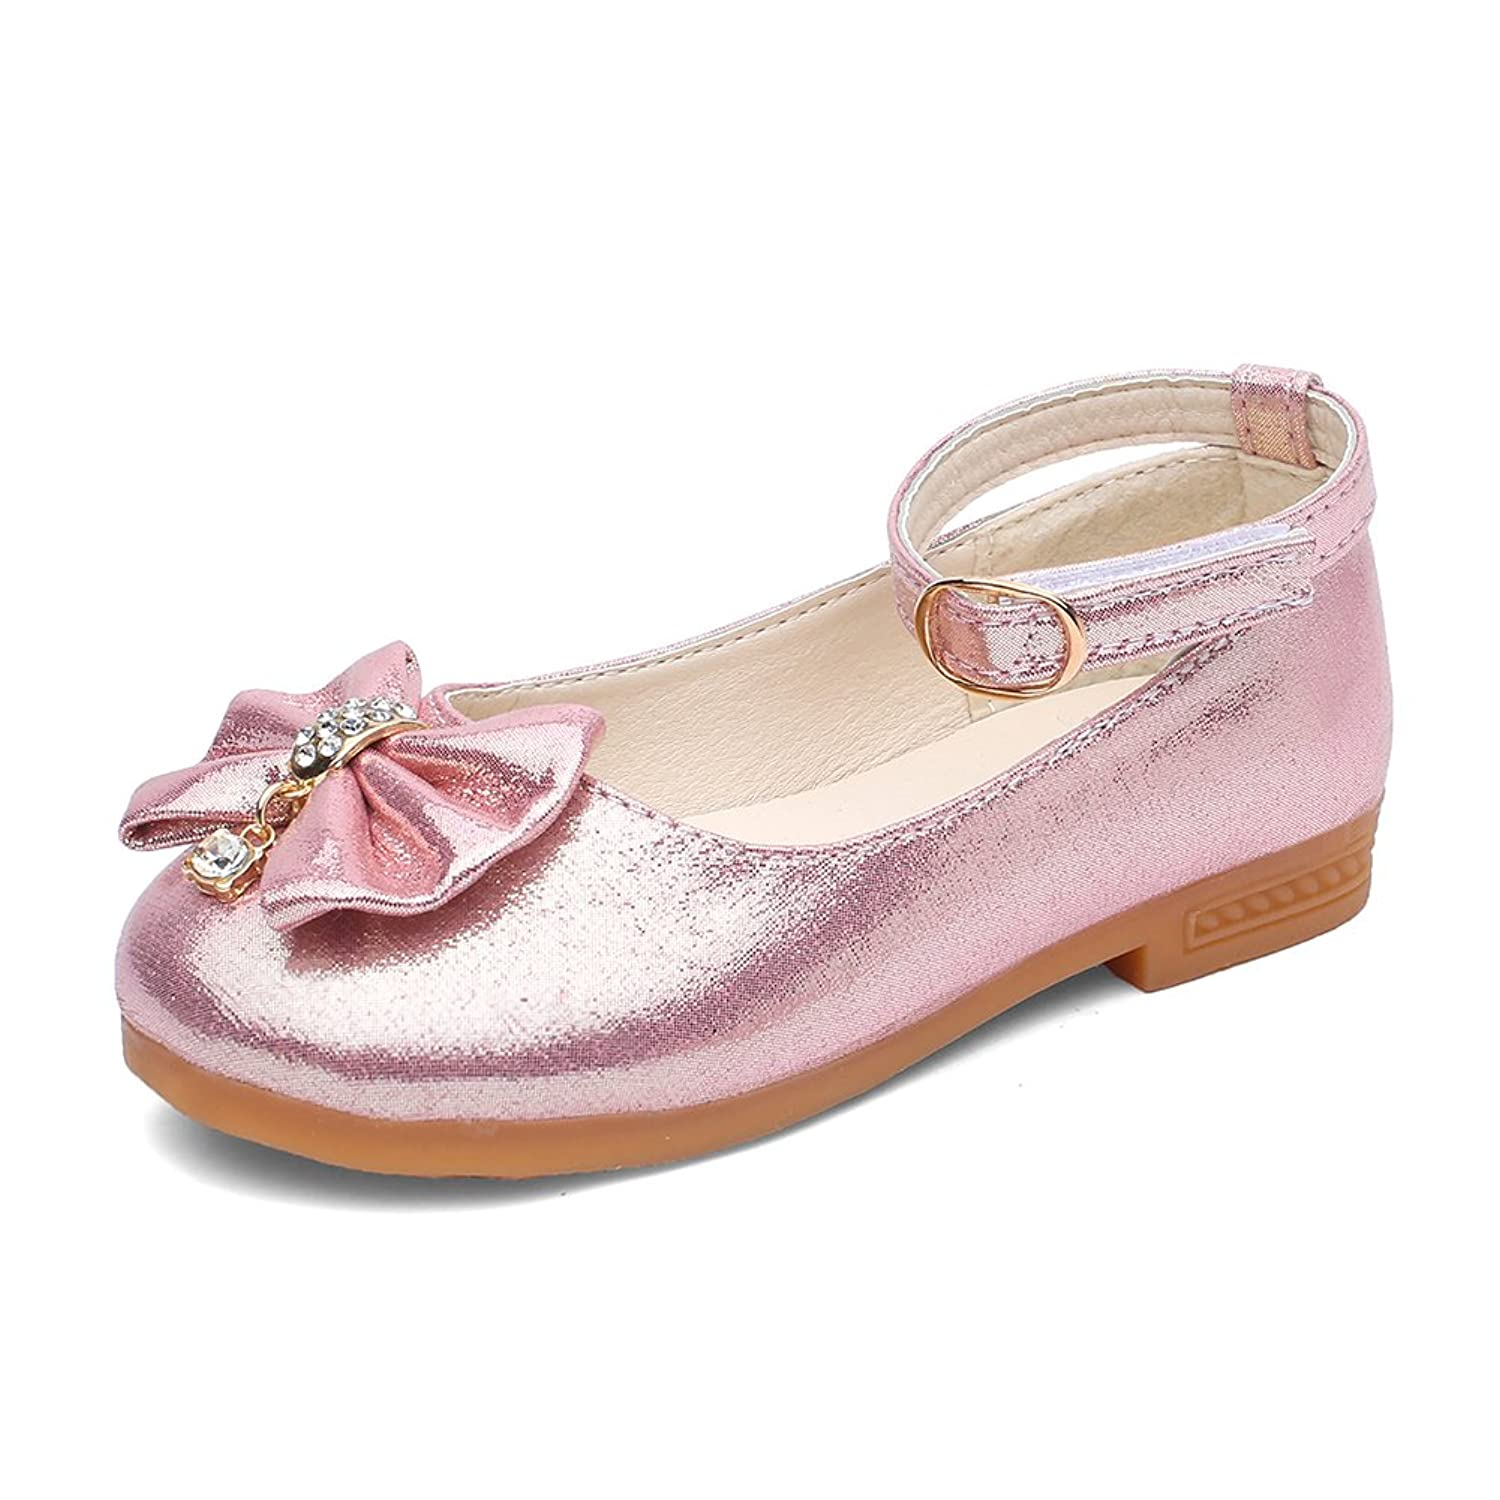 33ddd95c6 Amazon.com | CIOR Girls Ballet Flats Shoes Beaded Rhinestone Ballerina  Bowknot Mary Wedding for Party Princess Dress Merence(Toddler/Little Kids)  | Flats